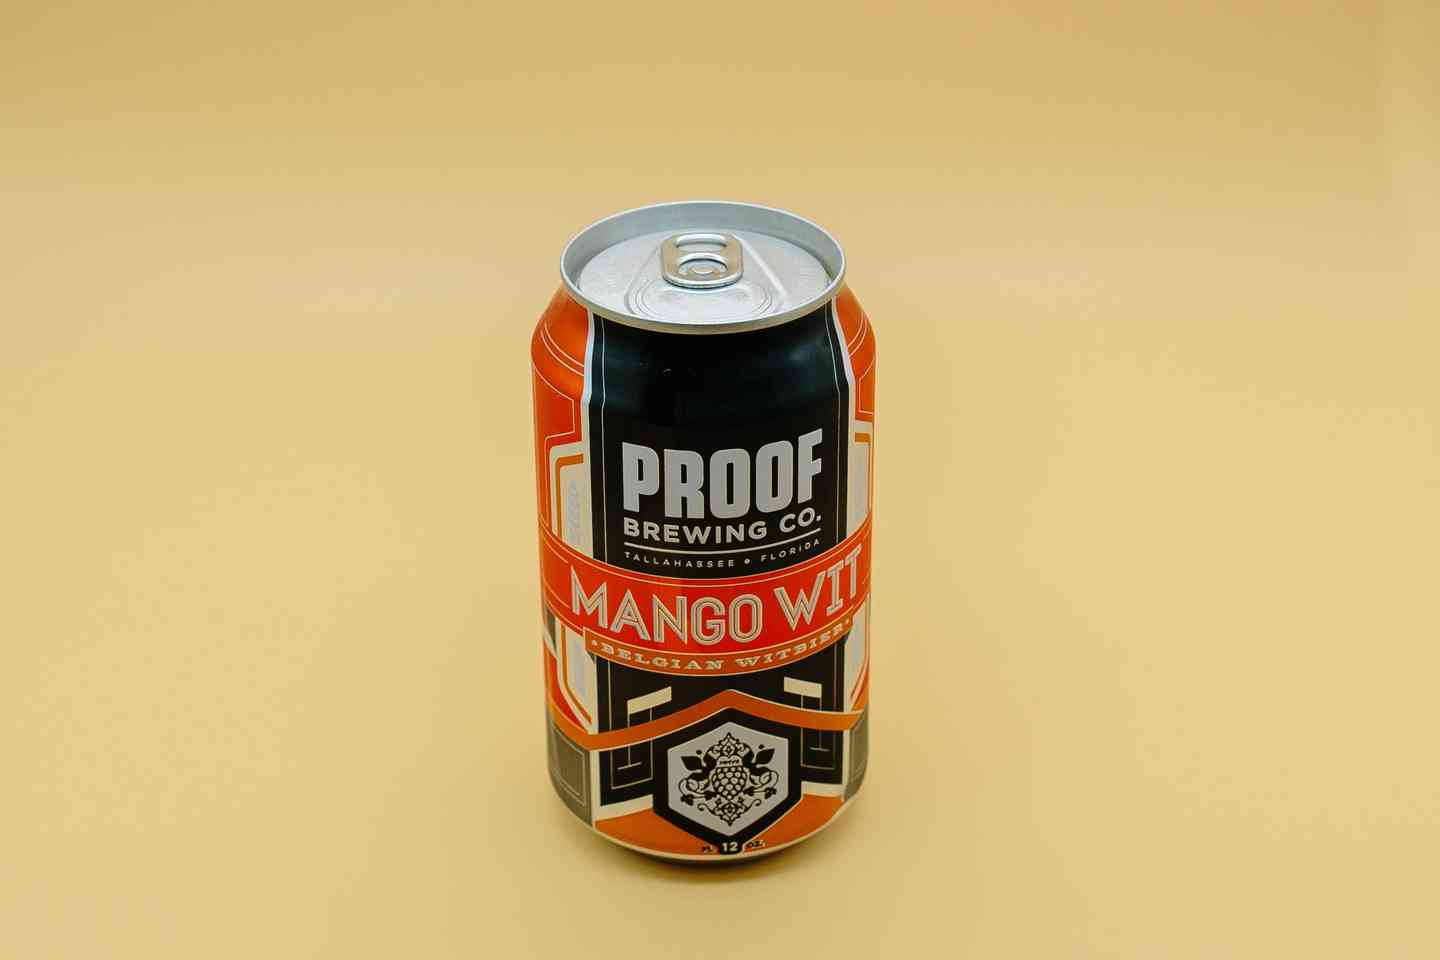 Proof mango wit